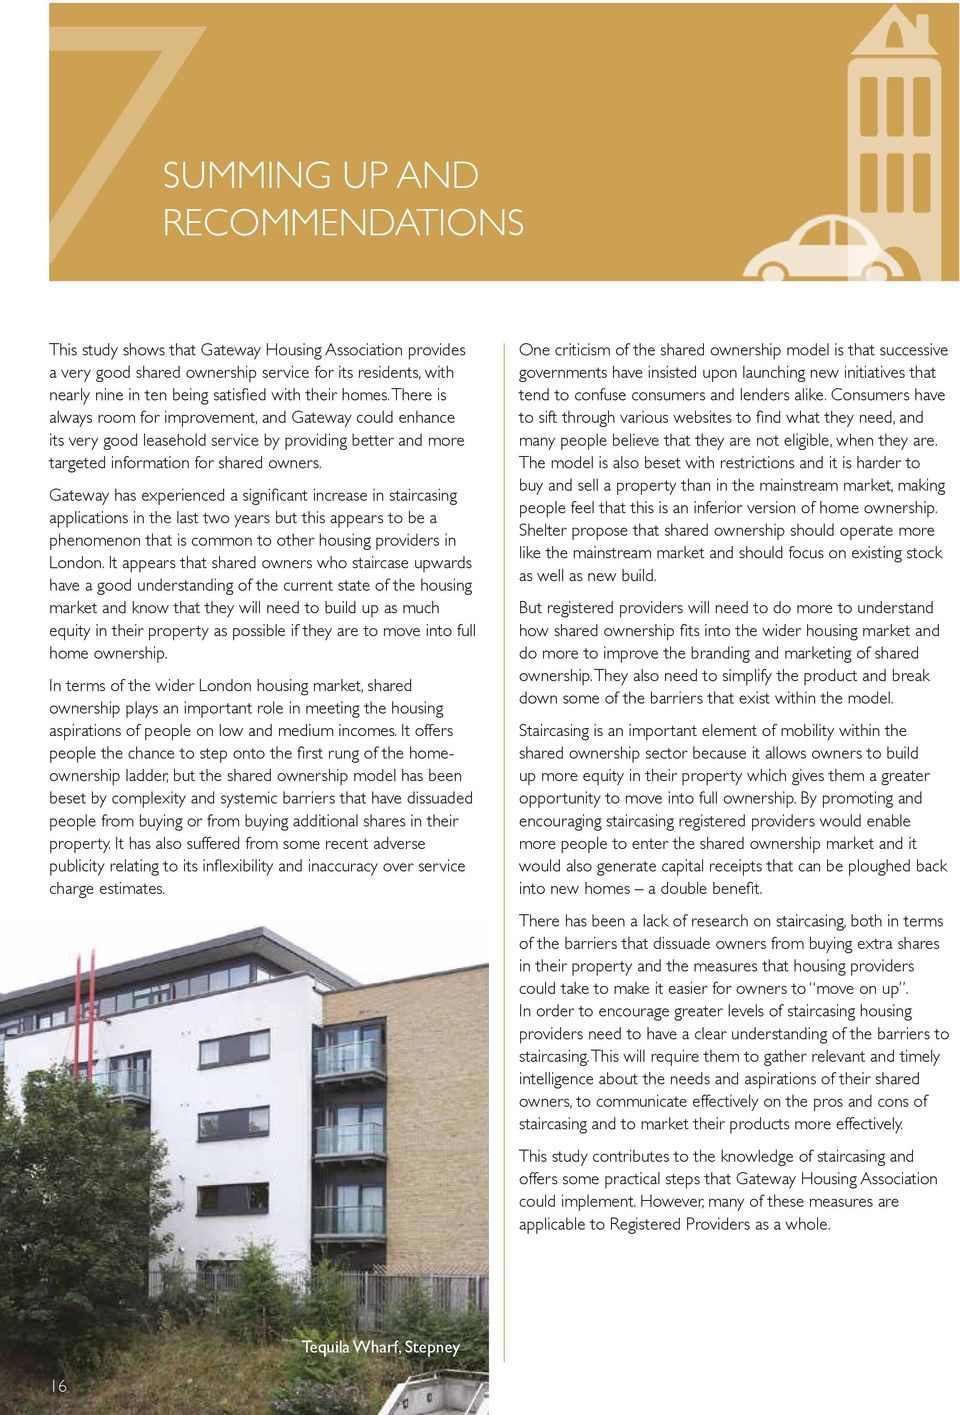 Gateway has experienced a significant increase in staircasing applications in the last two years but this appears to be a phenomenon that is common to other housing providers in London.